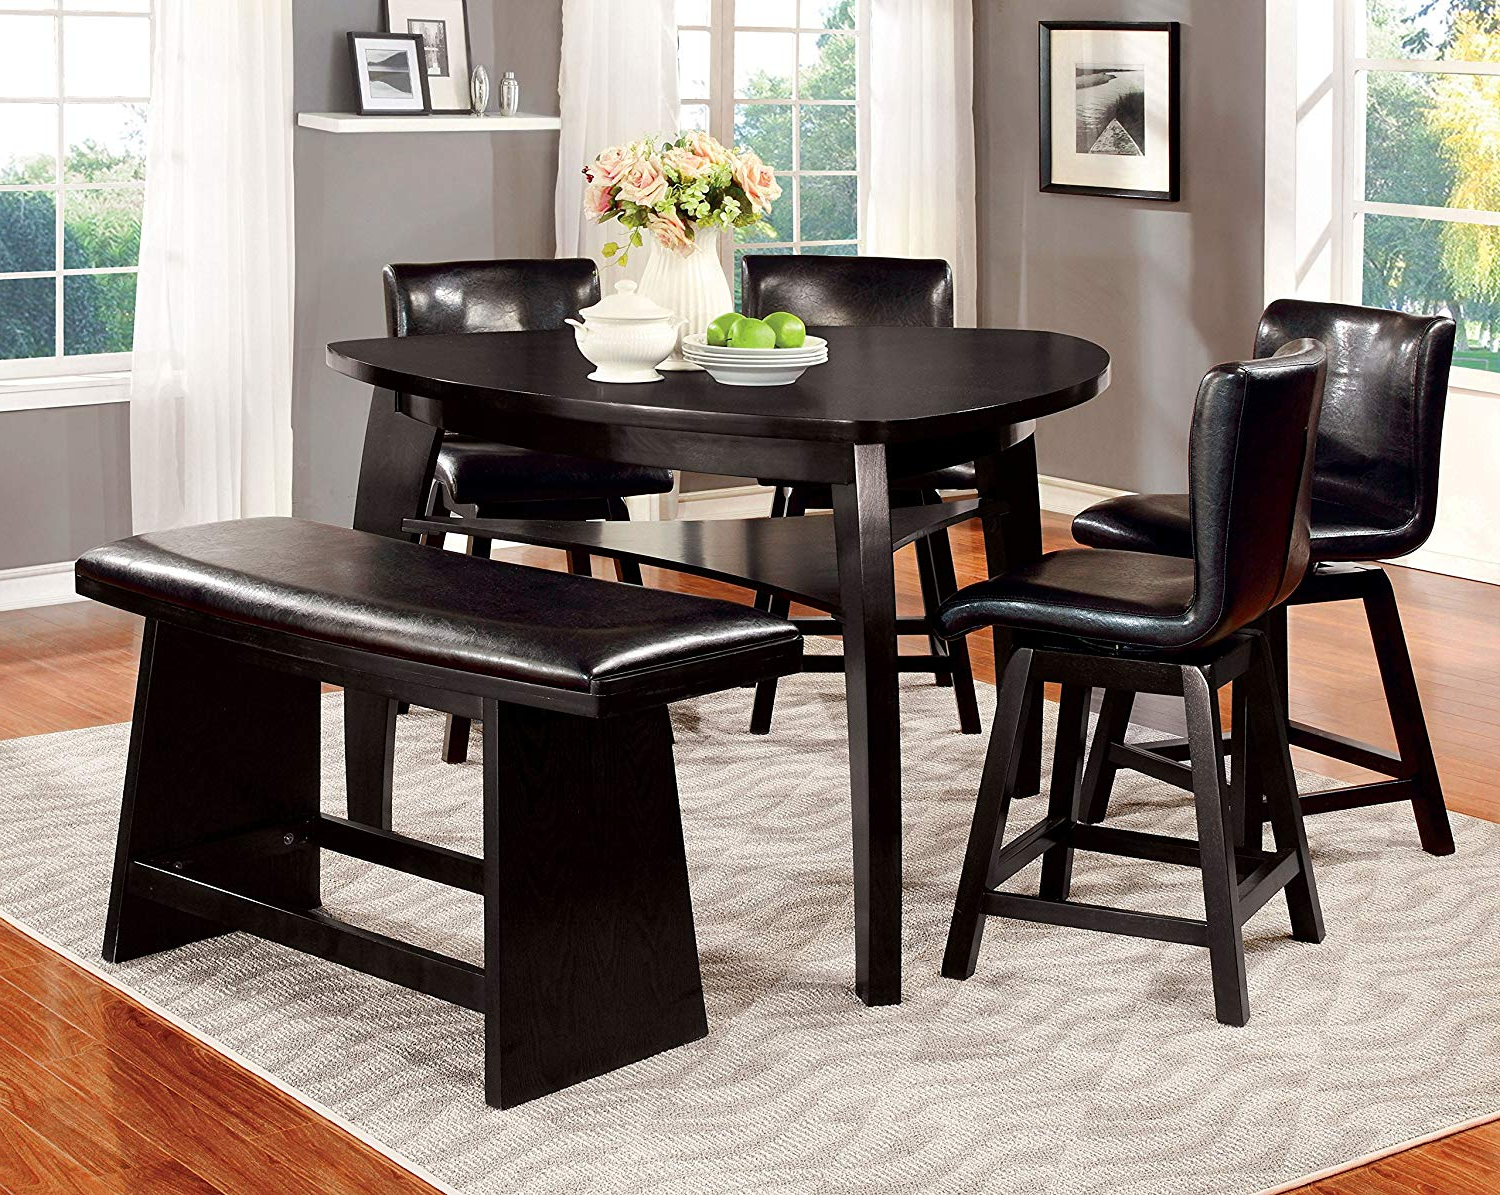 Amazon – Furniture Of America Morley Pub Dining Table, Black Inside Most Recently Released Amir 5 Piece Solid Wood Dining Sets (Set Of 5) (View 10 of 25)